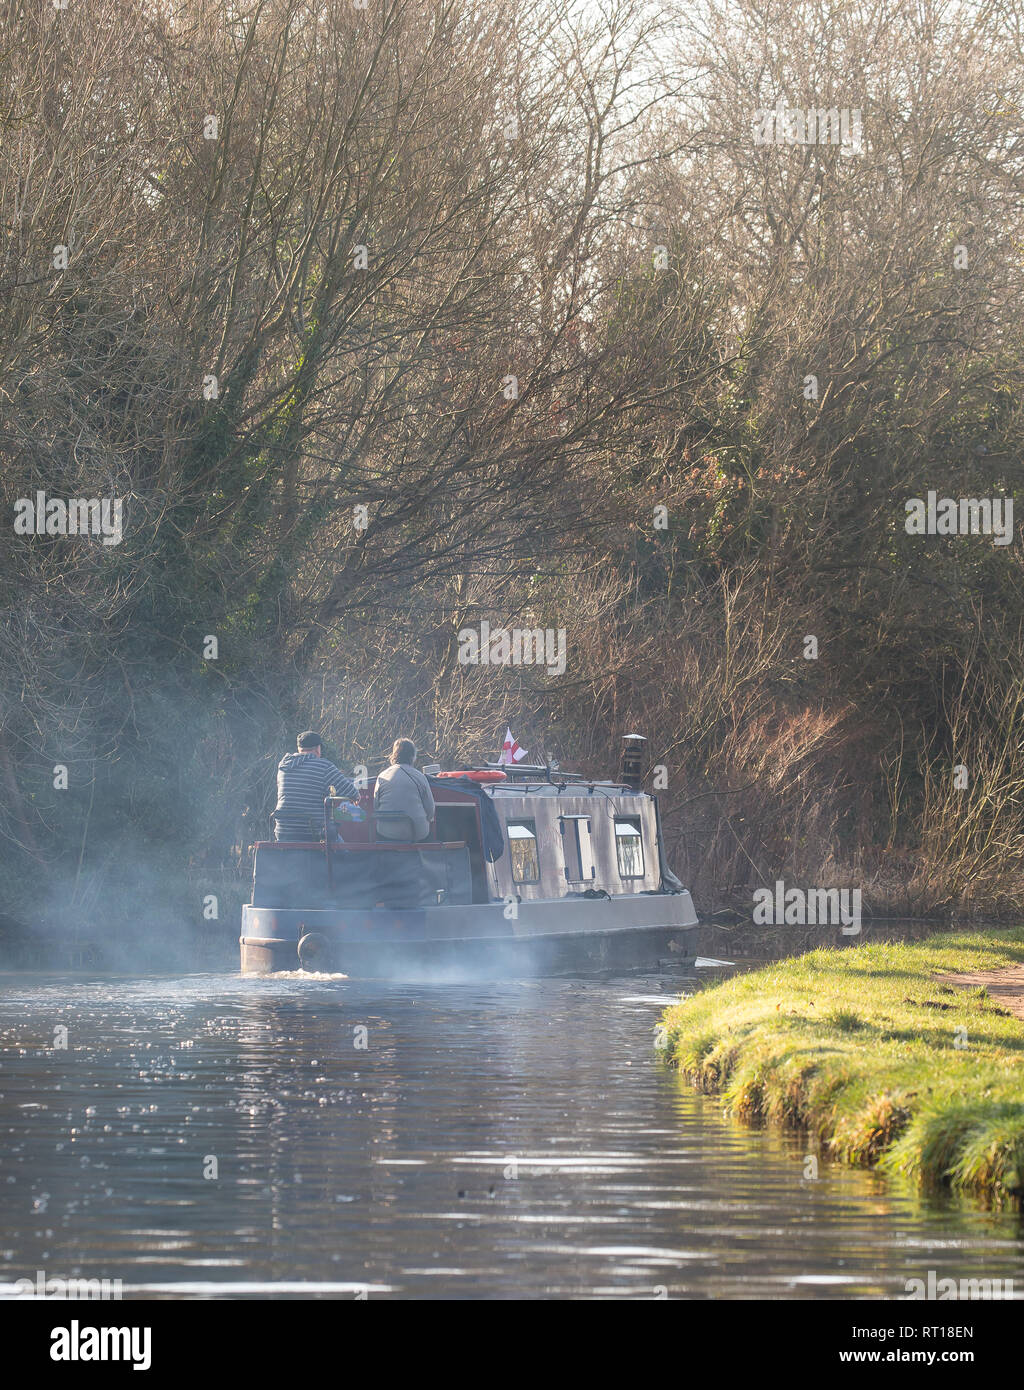 Kidderminster, UK. 27th February, 2019. UK weather: beautiful sunshine in Worcestershire as temperatures head towards 15 degrees Celsius for the day. No winter coats or gloves are needed, just jumpers, as these two travellers enjoy the best of what Britain can offer, aboard their canal boat, on our inland waterways on this unusally warm February day. Credit Lee Hudson/Alamy Live News - Stock Image